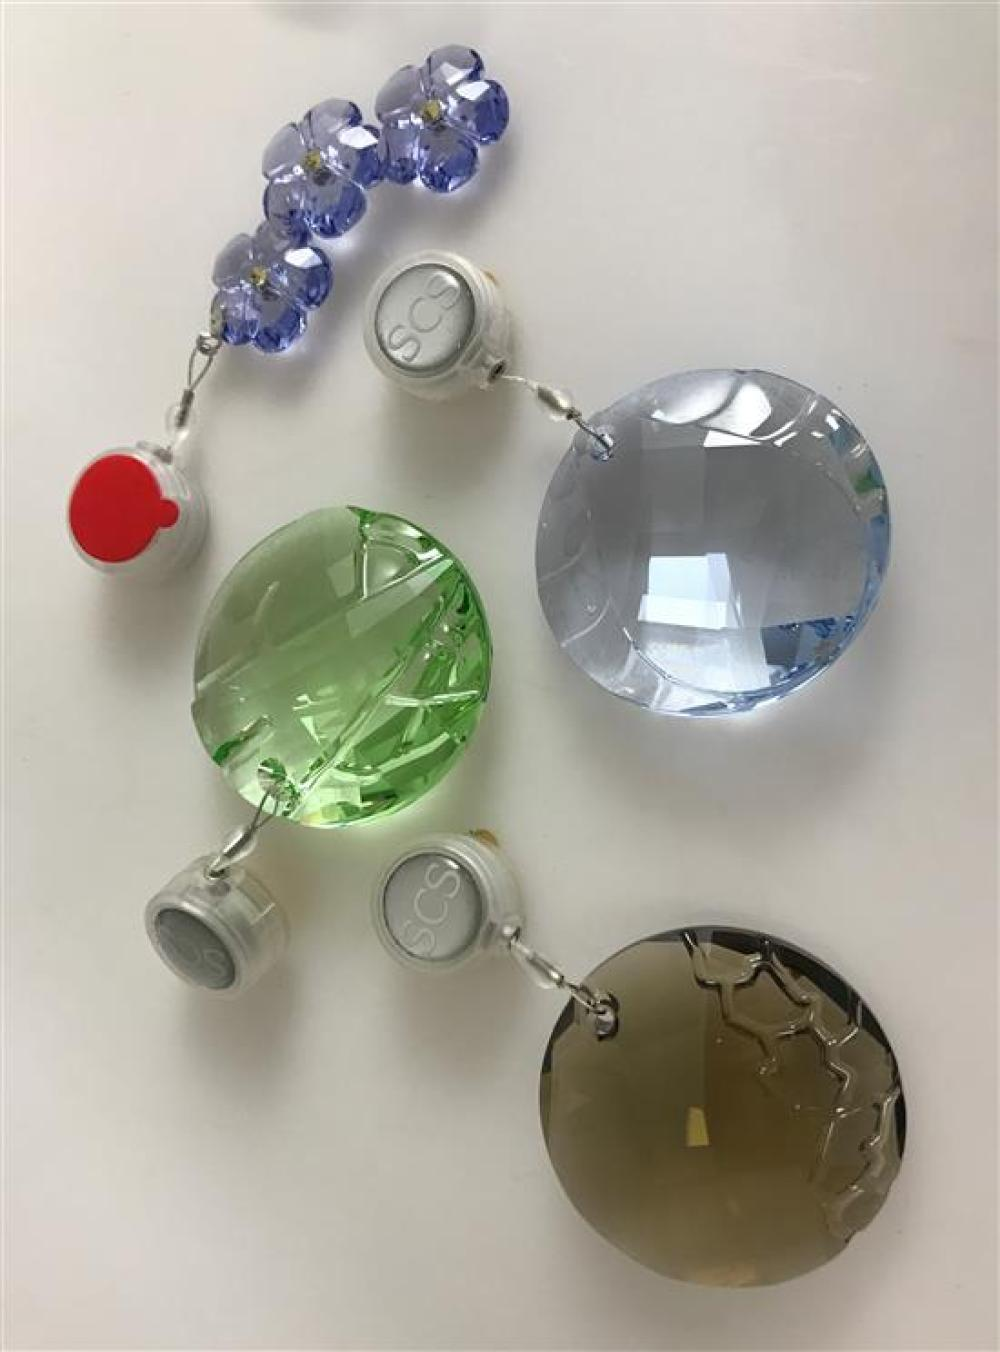 """Lot 1094: 4 SWAROVSKI CRYSTAL SUN CATCHERS IN BLUE, GREEN, AMETHYST AND SMOKEY GREY. CRYSTALS ARE 2."""" ORIGINAL BOXES INCLUDED"""